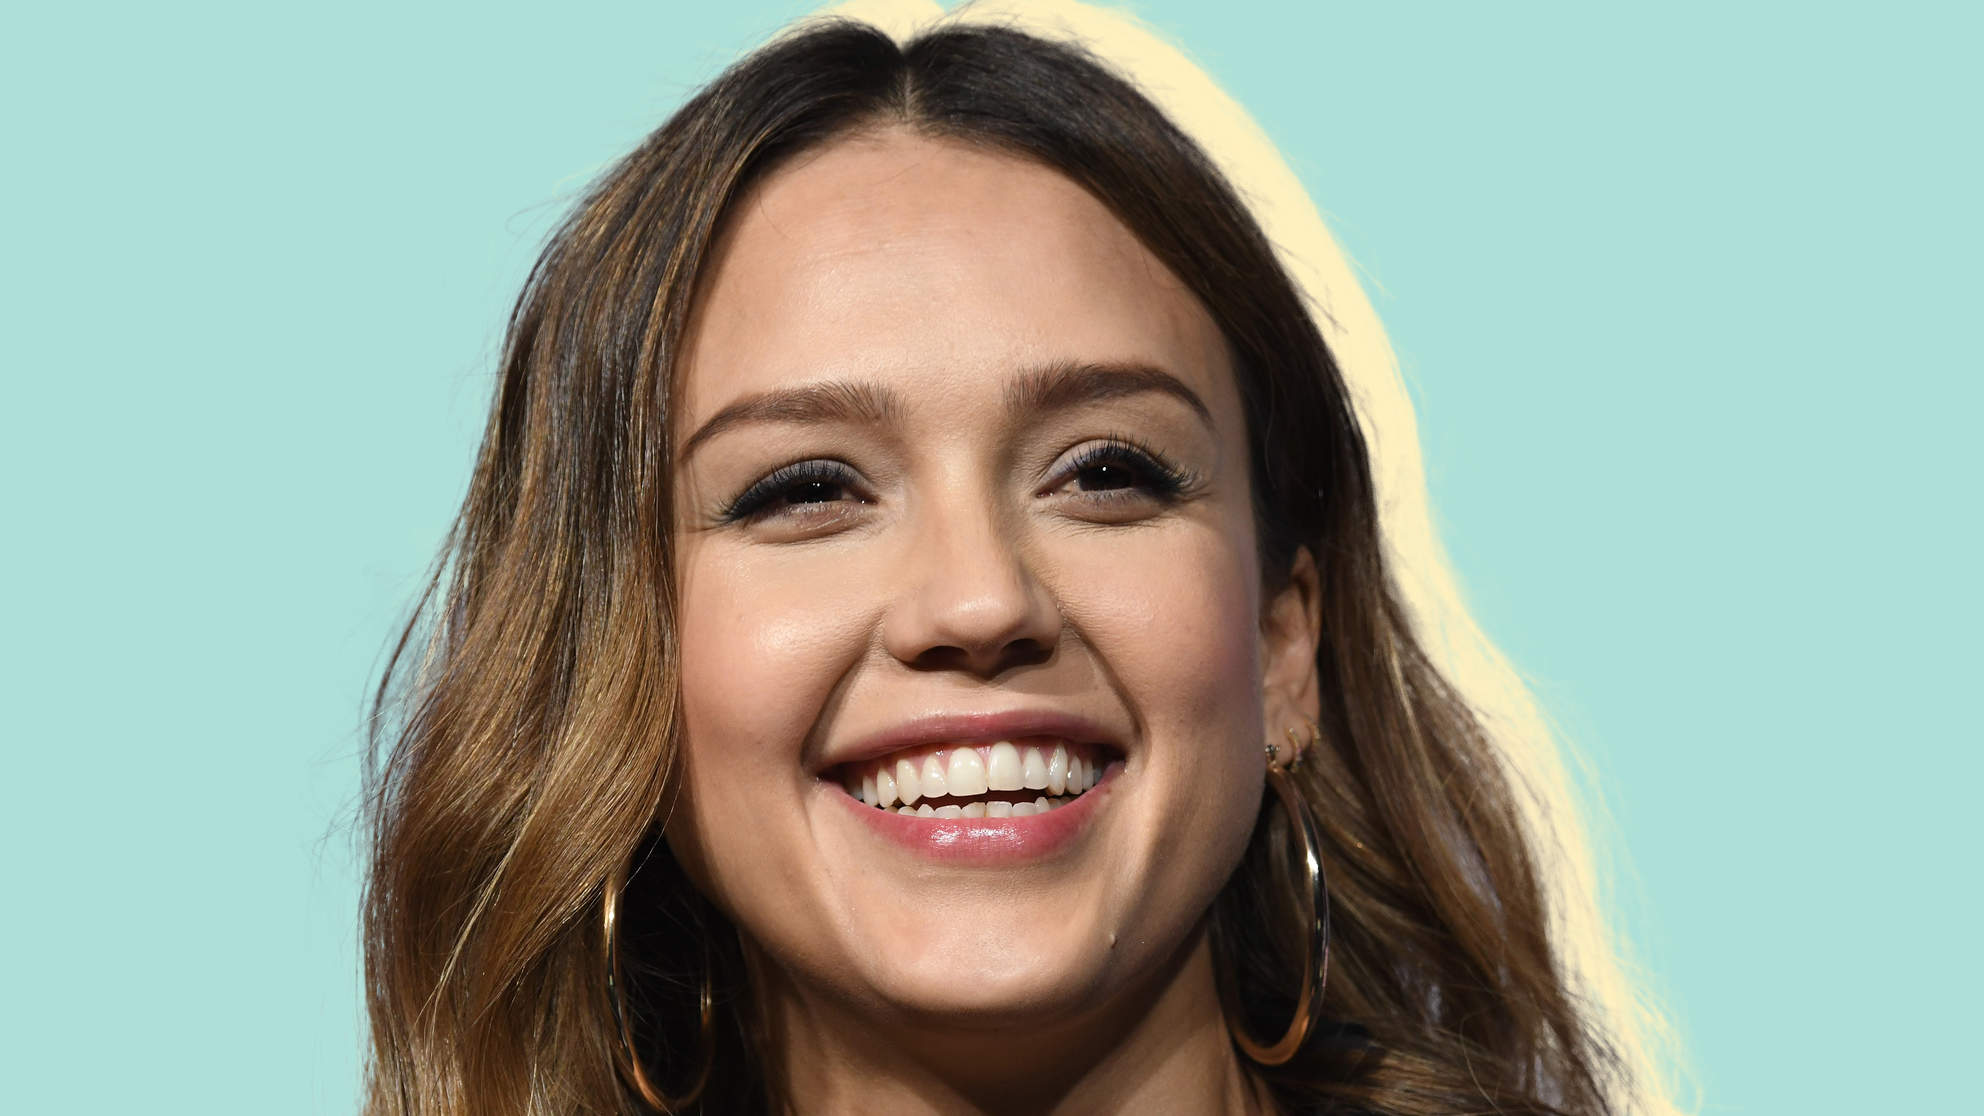 Jessica Alba Swears By This Vitamin C Serum for Younger, Brighter Skin